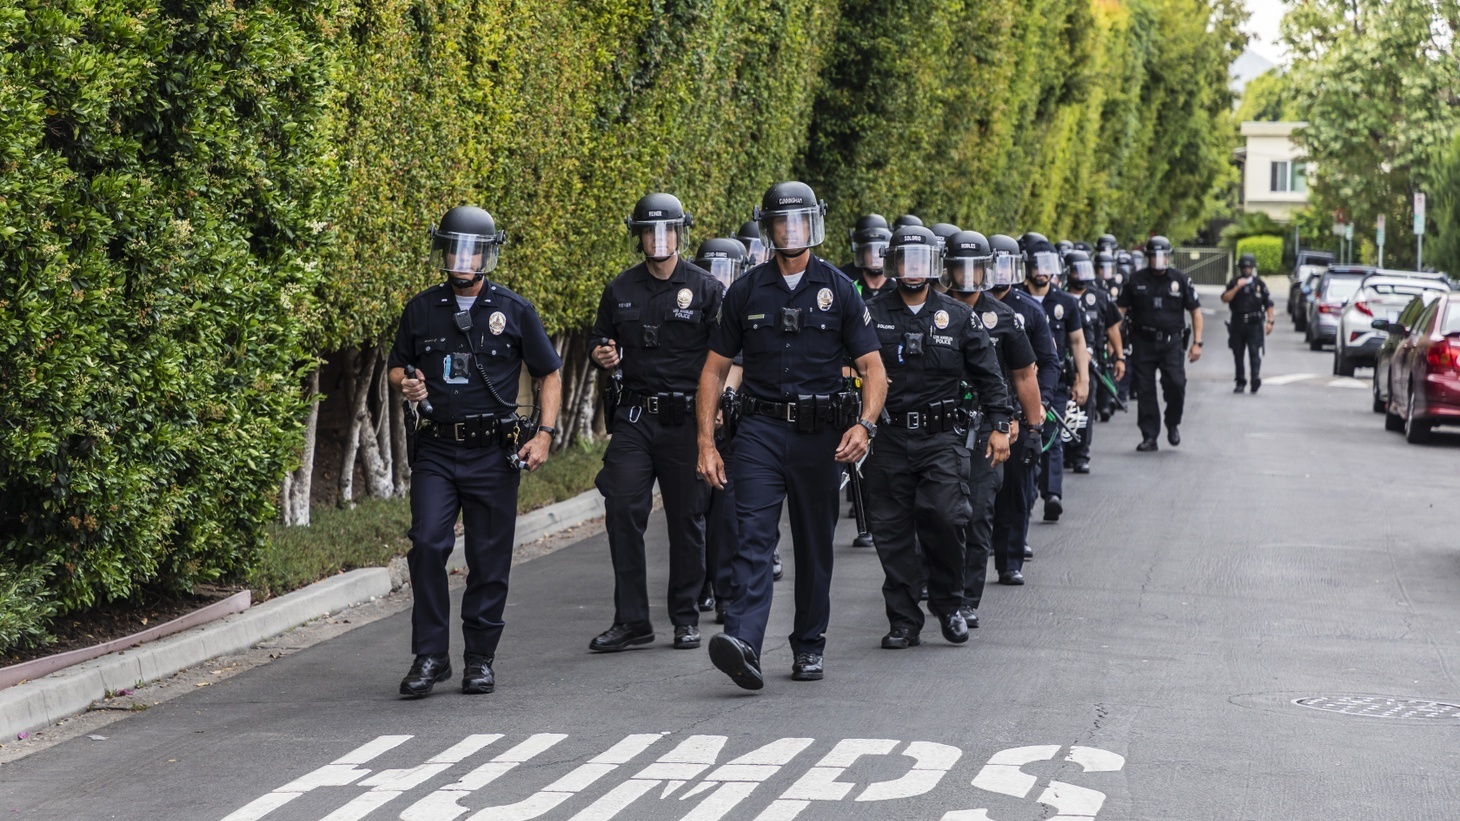 Police are on patrol outside LA Mayor Eric Garcetti's home. Protestors gathered there, calling on Garcetti to fire LAPD chief Michel Moore. June 2, 2020, Los Angeles, CA.